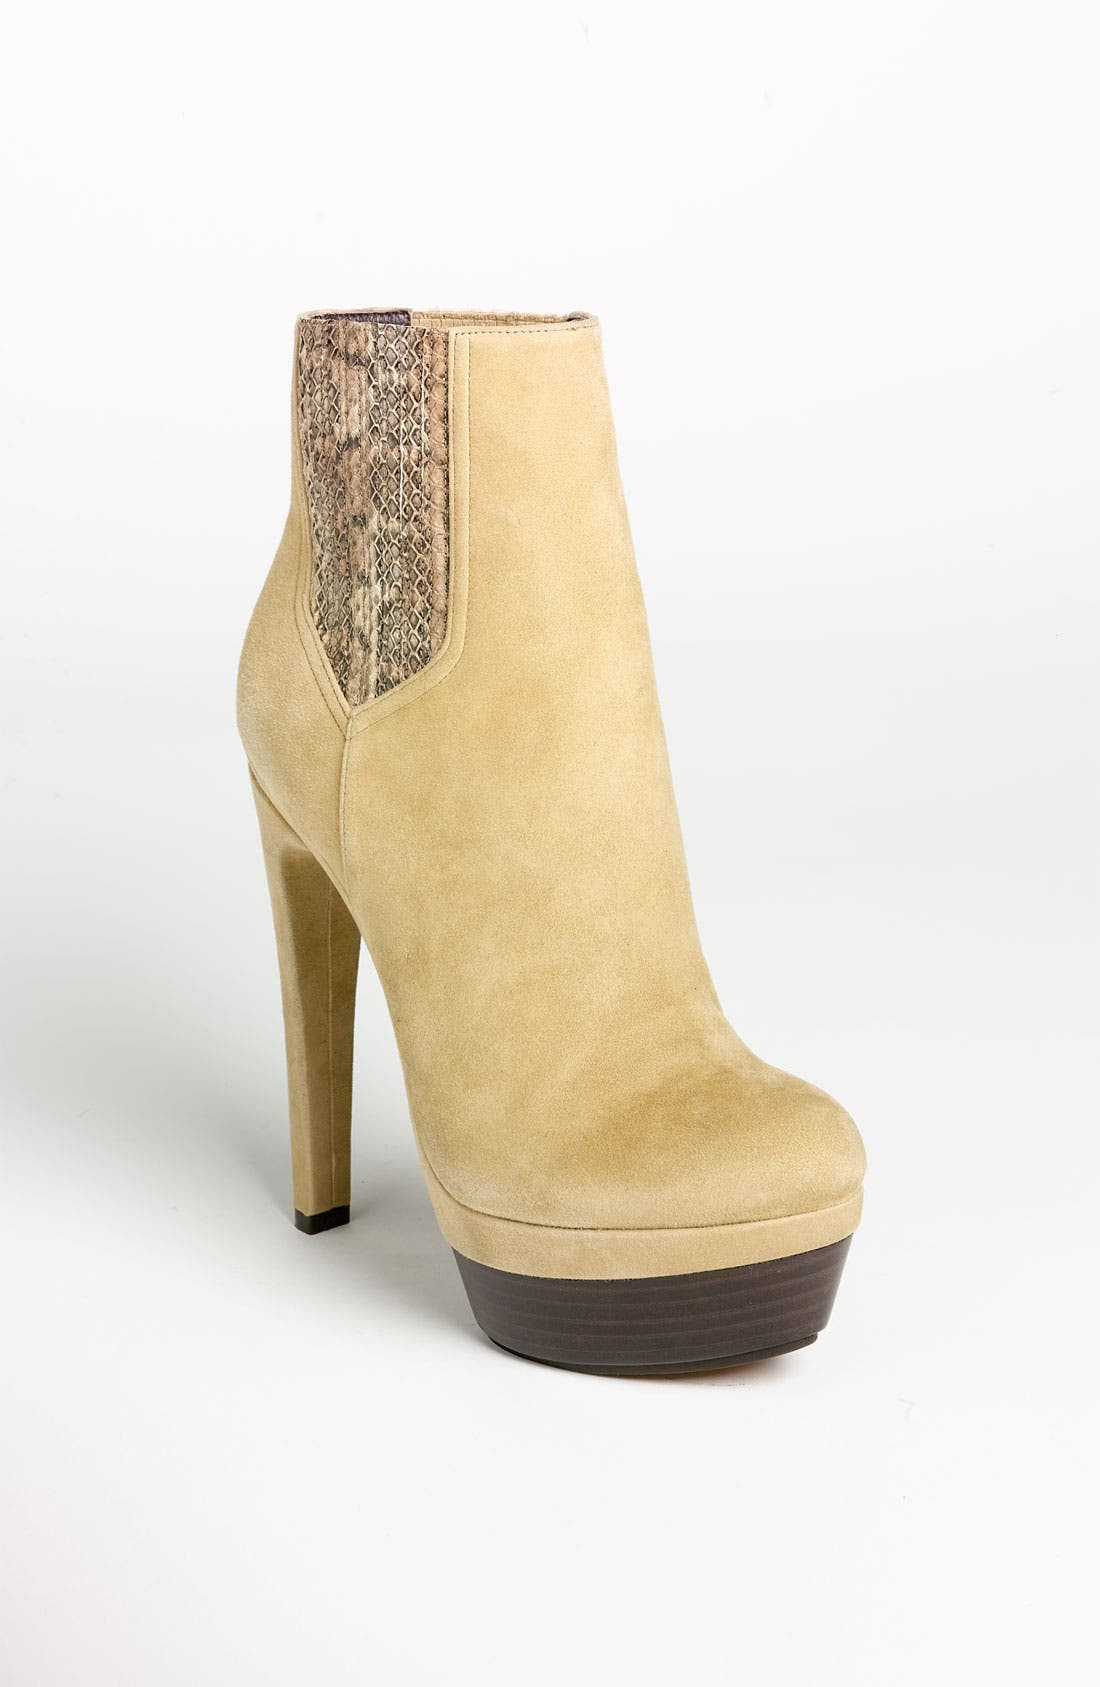 Alternate Image 1 Selected - Rachel Zoe 'Audrey' Boot